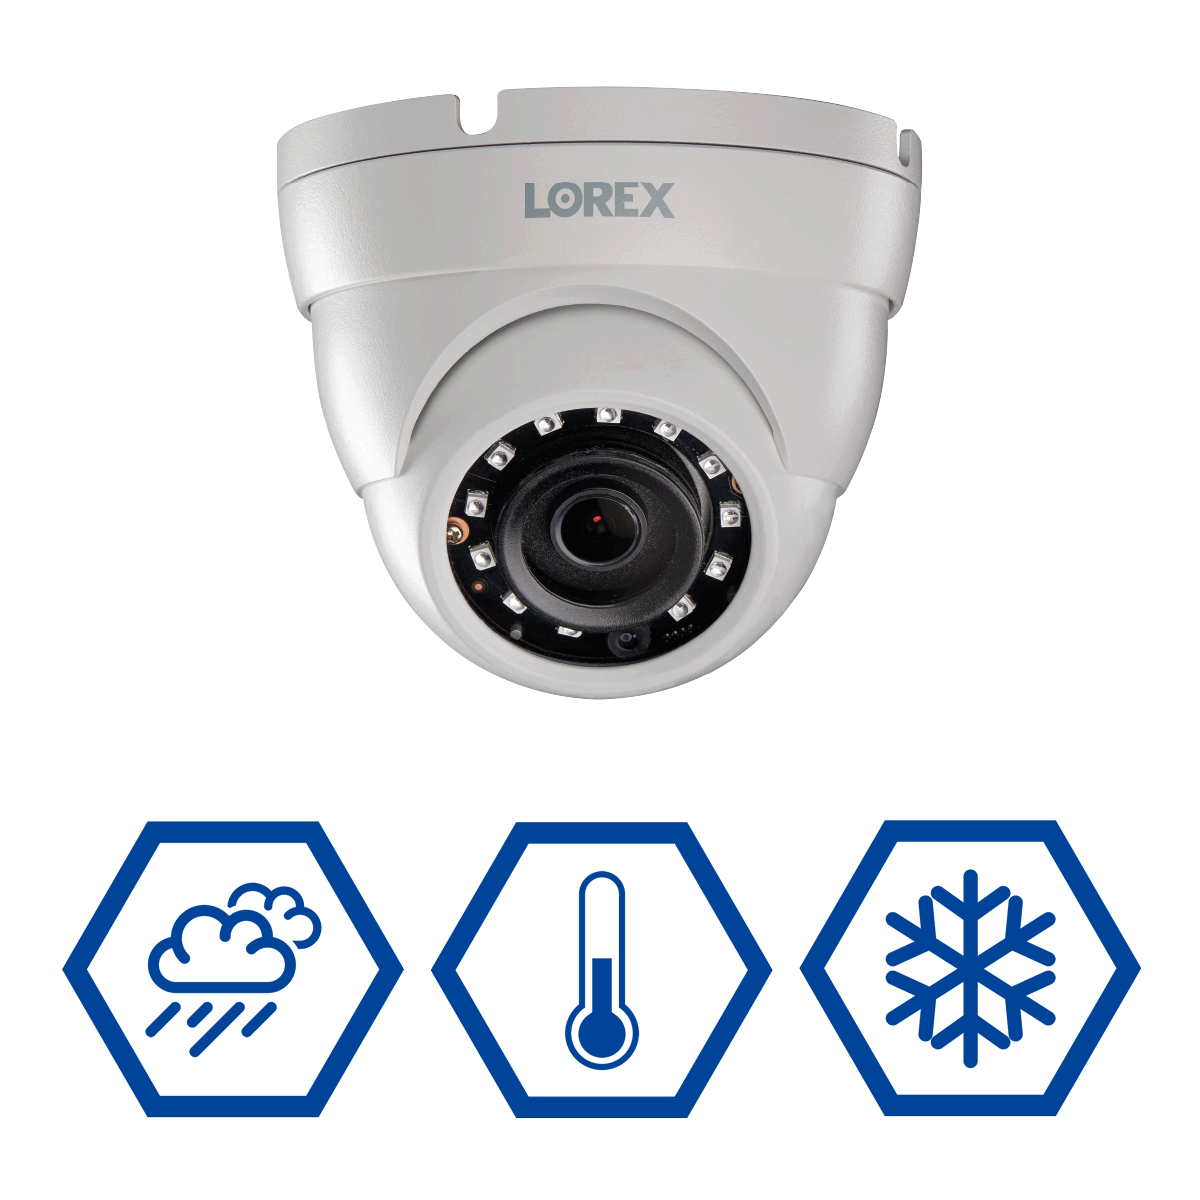 4K weatherproof security camera for year-round protection